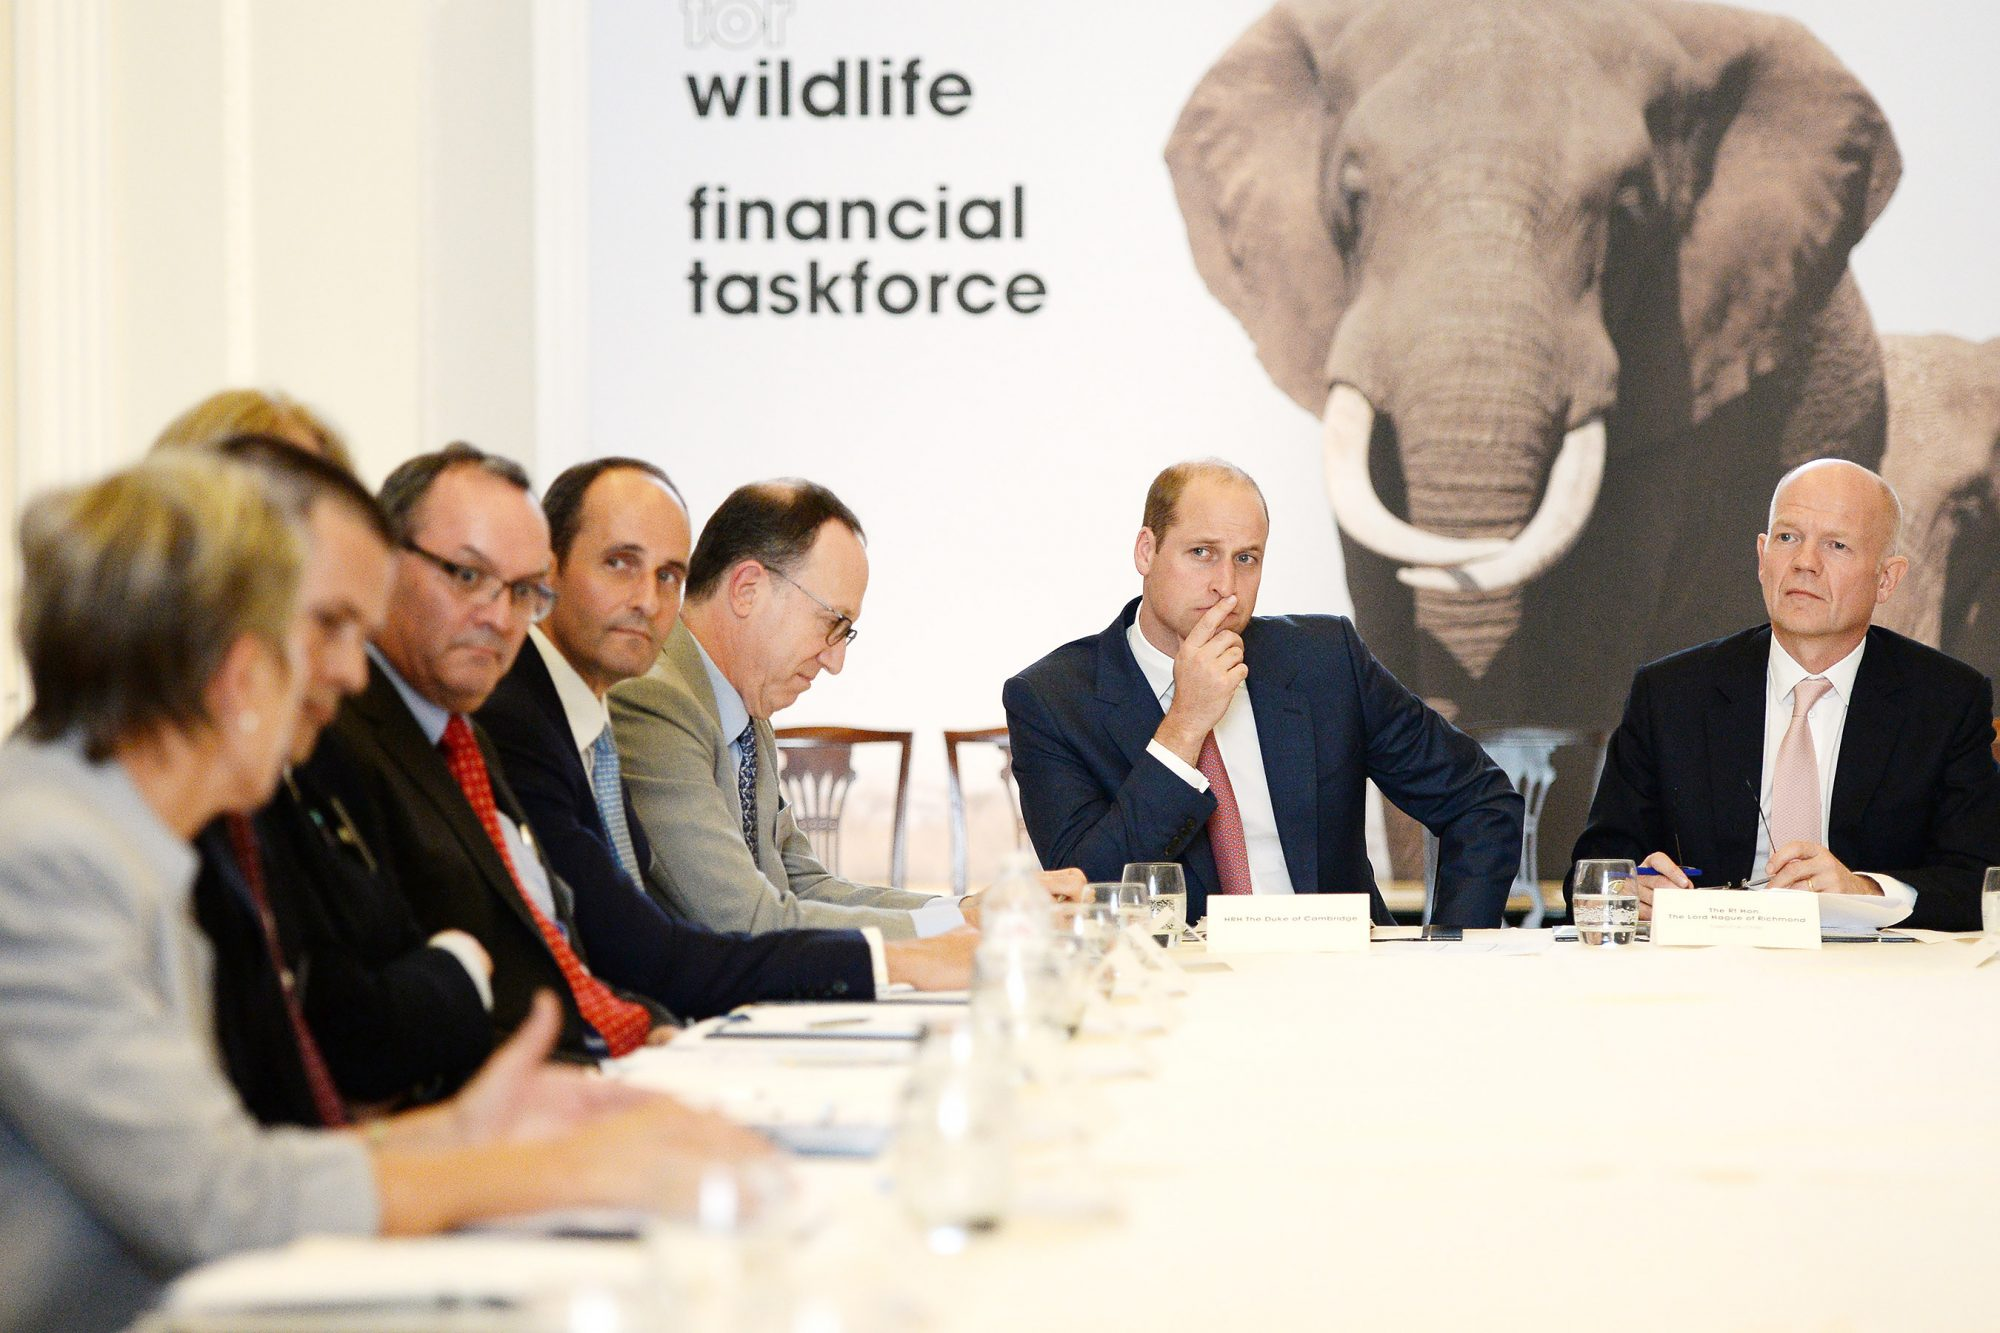 The Duke Of Cambridge Hosts The Signing Ceremony Of United For Wildlife's Financial Taskforce Declaration